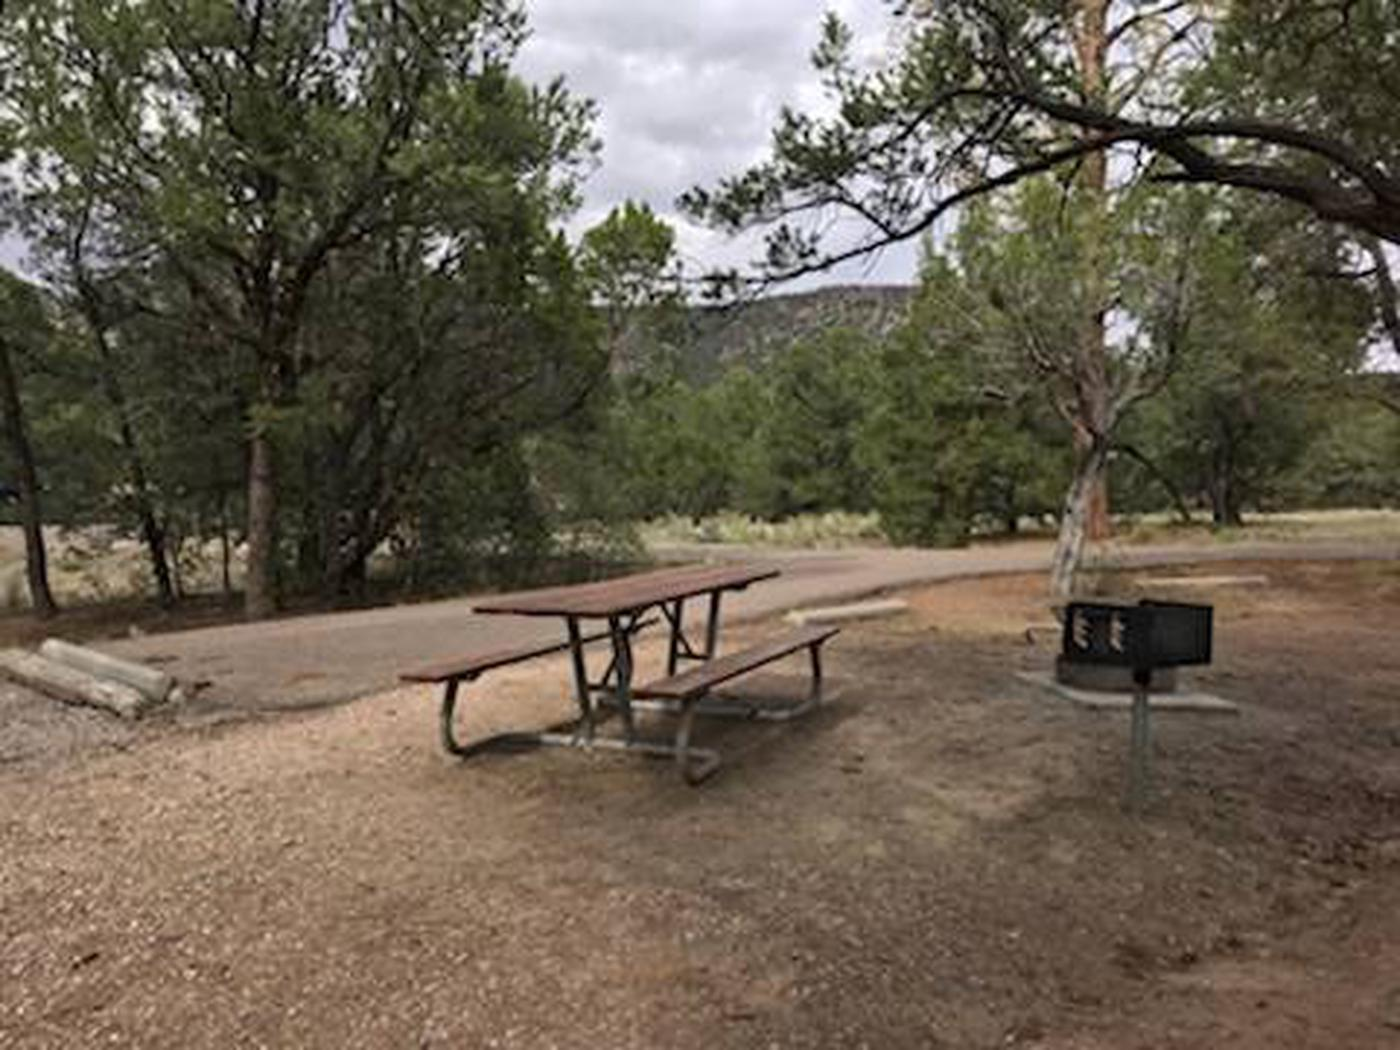 This is a picture of a campsite at Coal Mine CGA campsite at Coal Mina CG